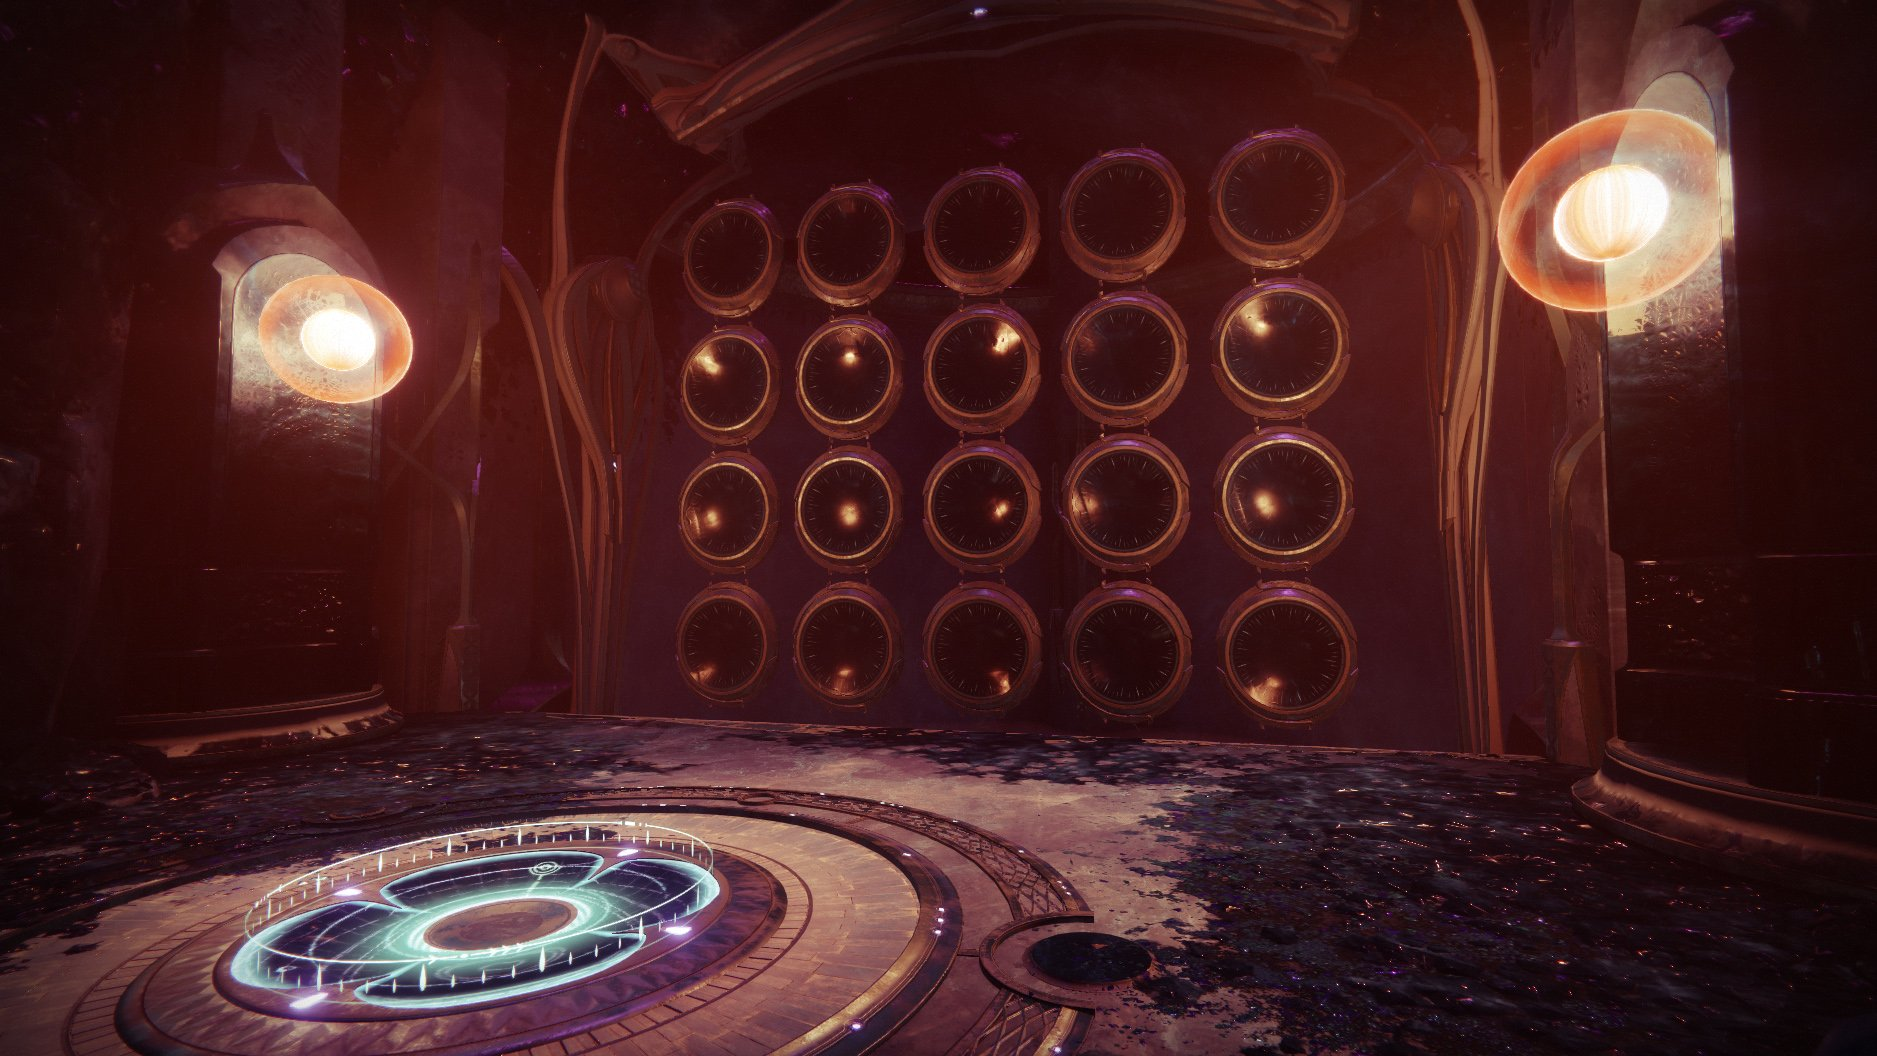 All Wishes for the Wall of Wishes in the Last Wish raid in